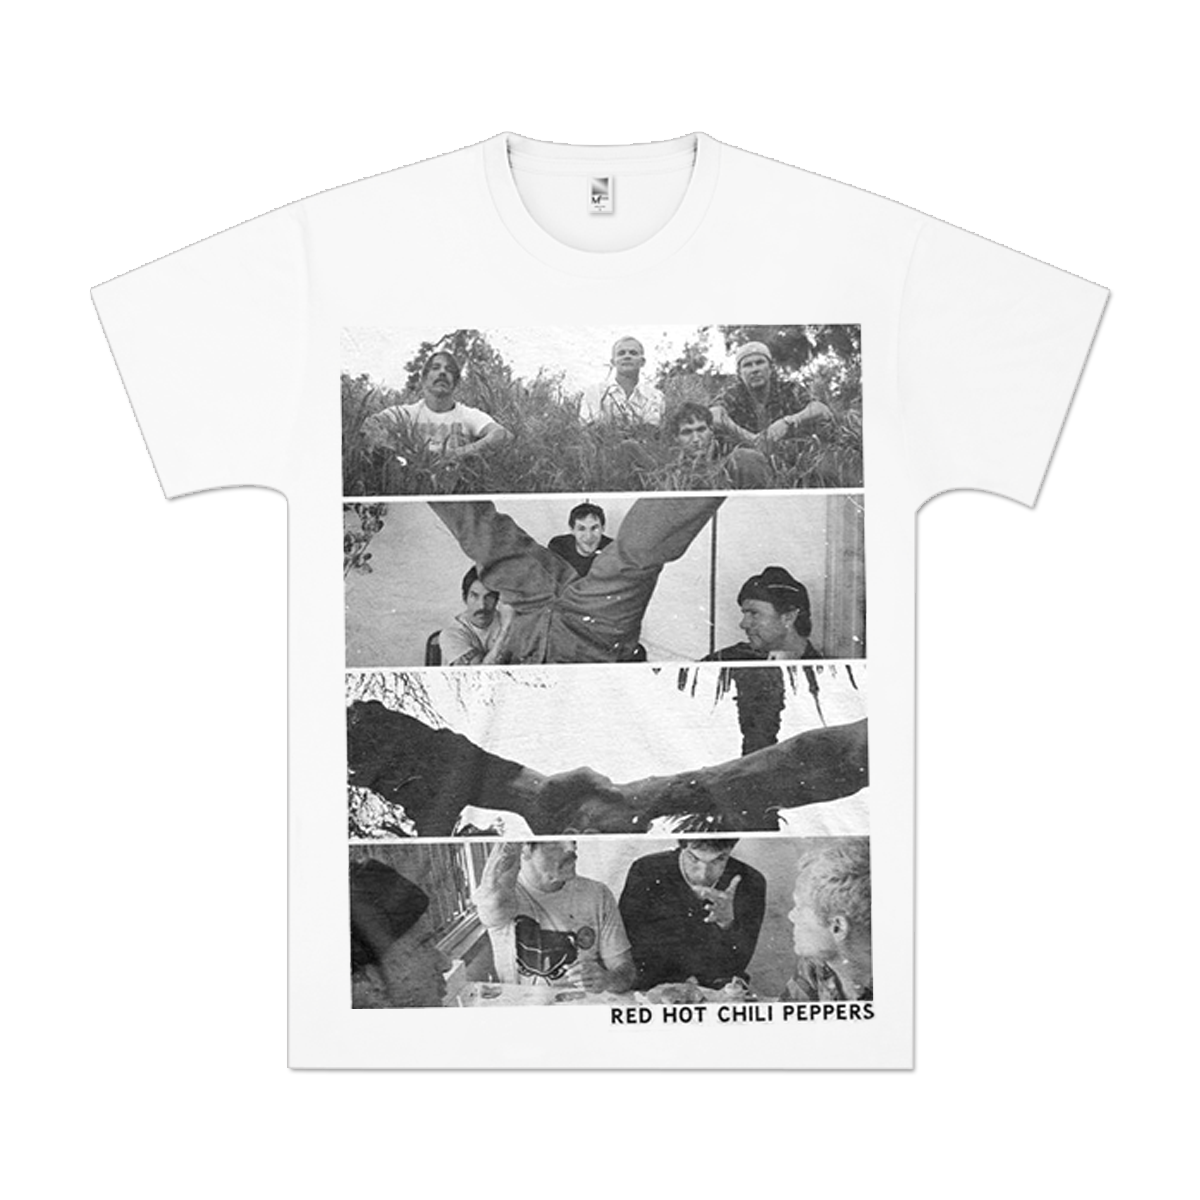 Red Hot Chili Peppers Spliced Photo T-Shirt